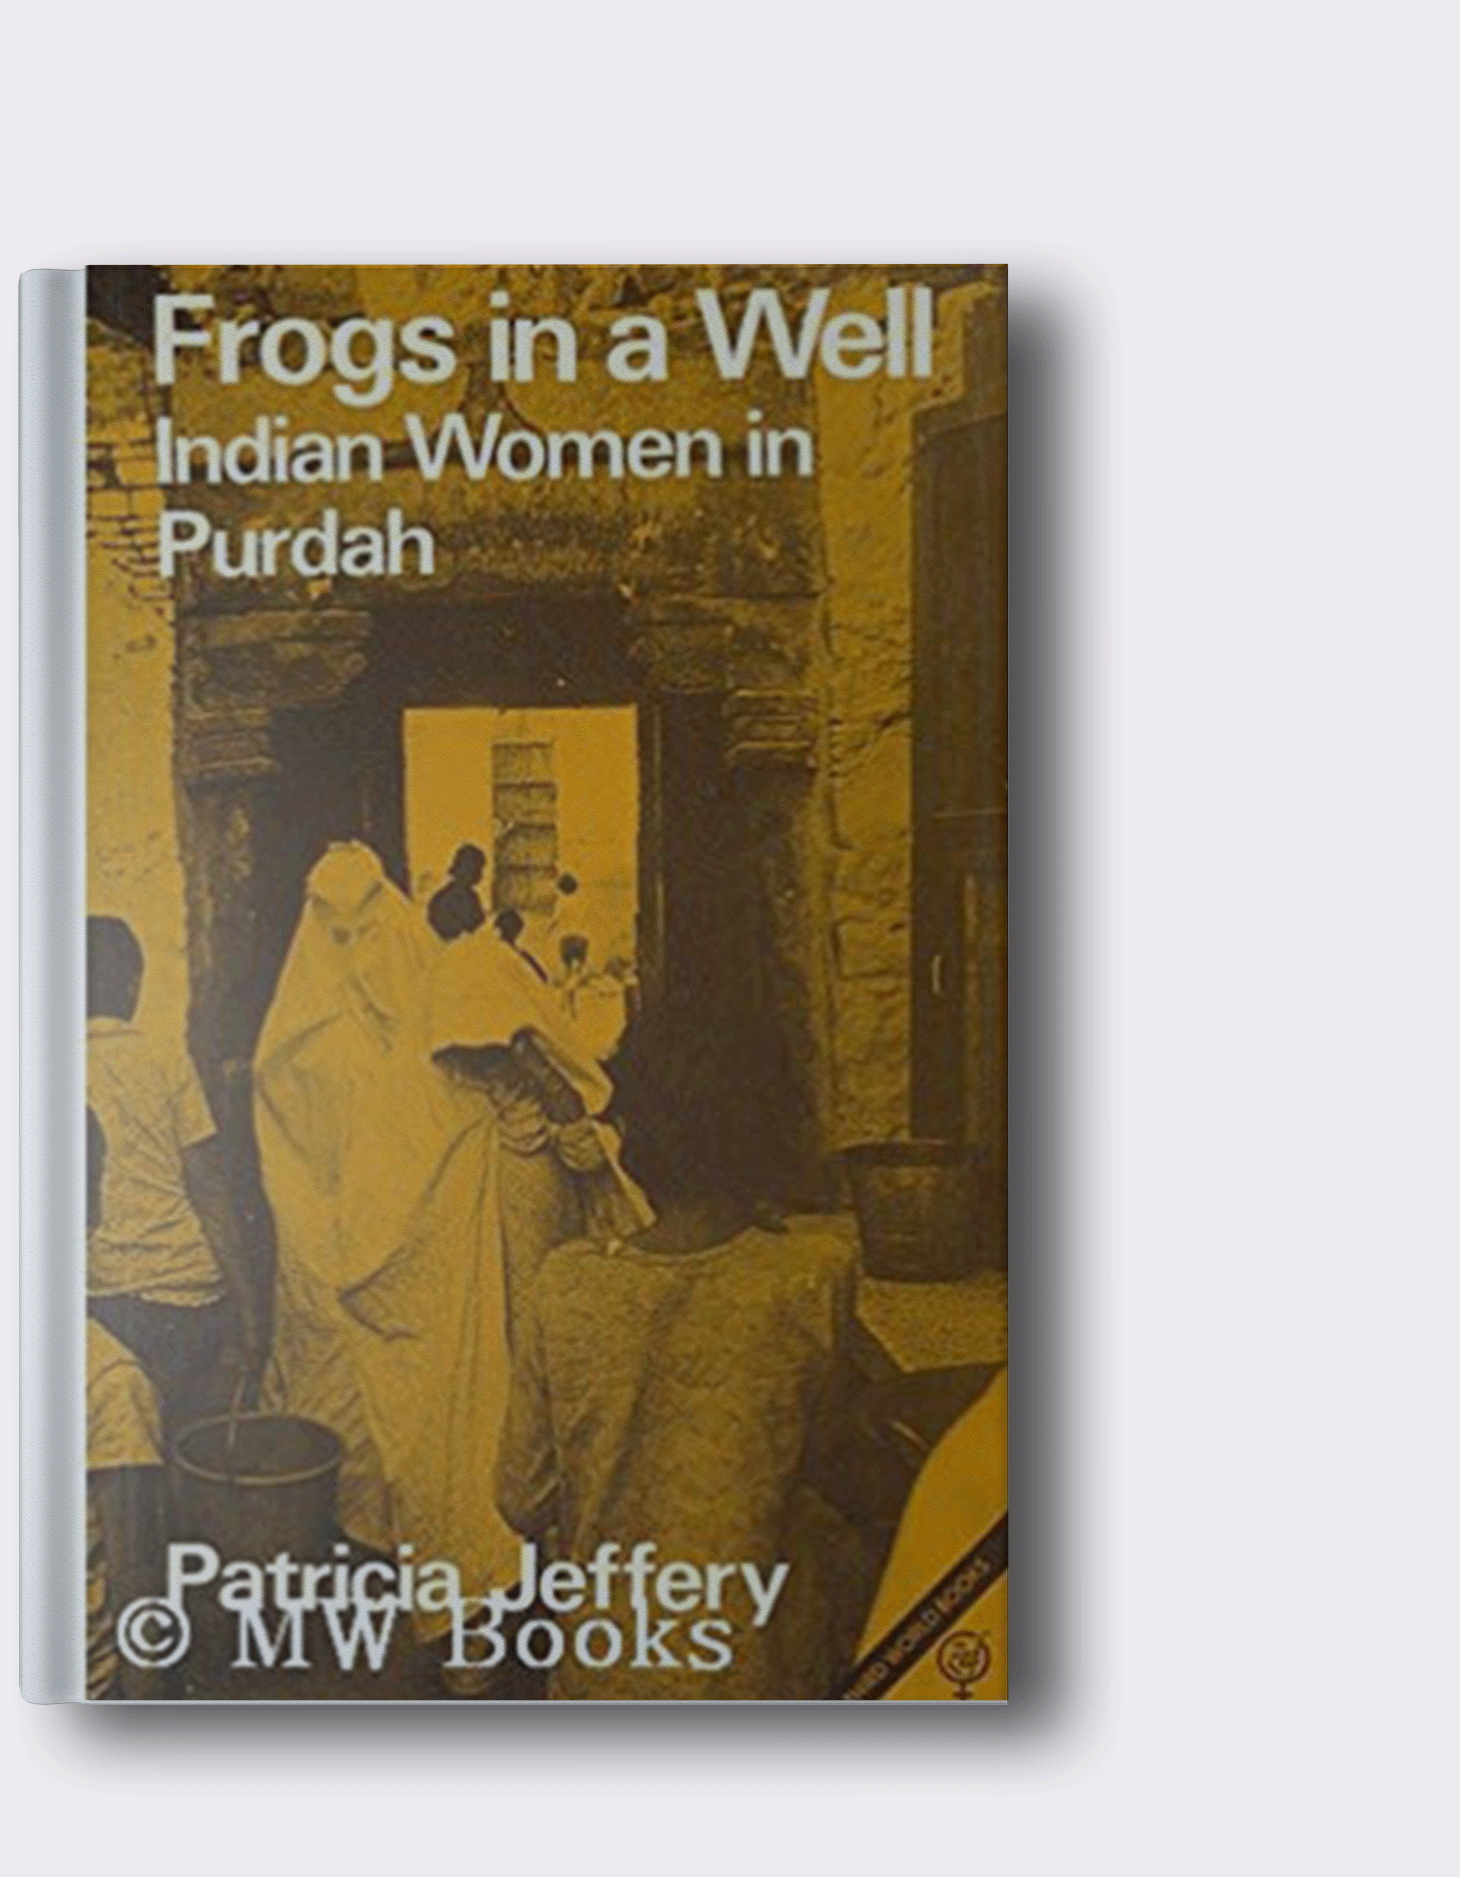 frogs in a a well - indian woman in purdah by patricia jeffery